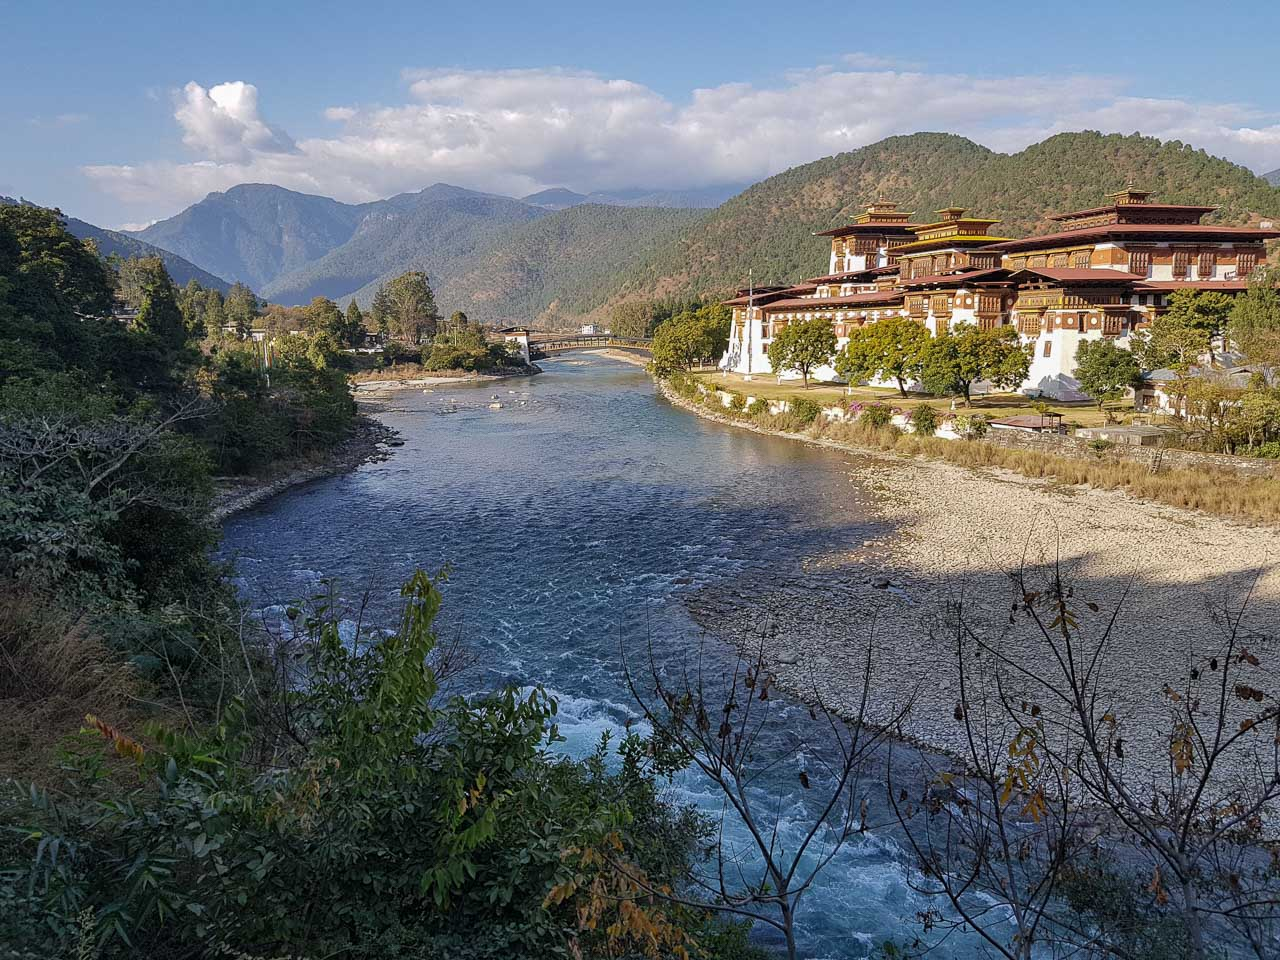 The Punakha Dzong